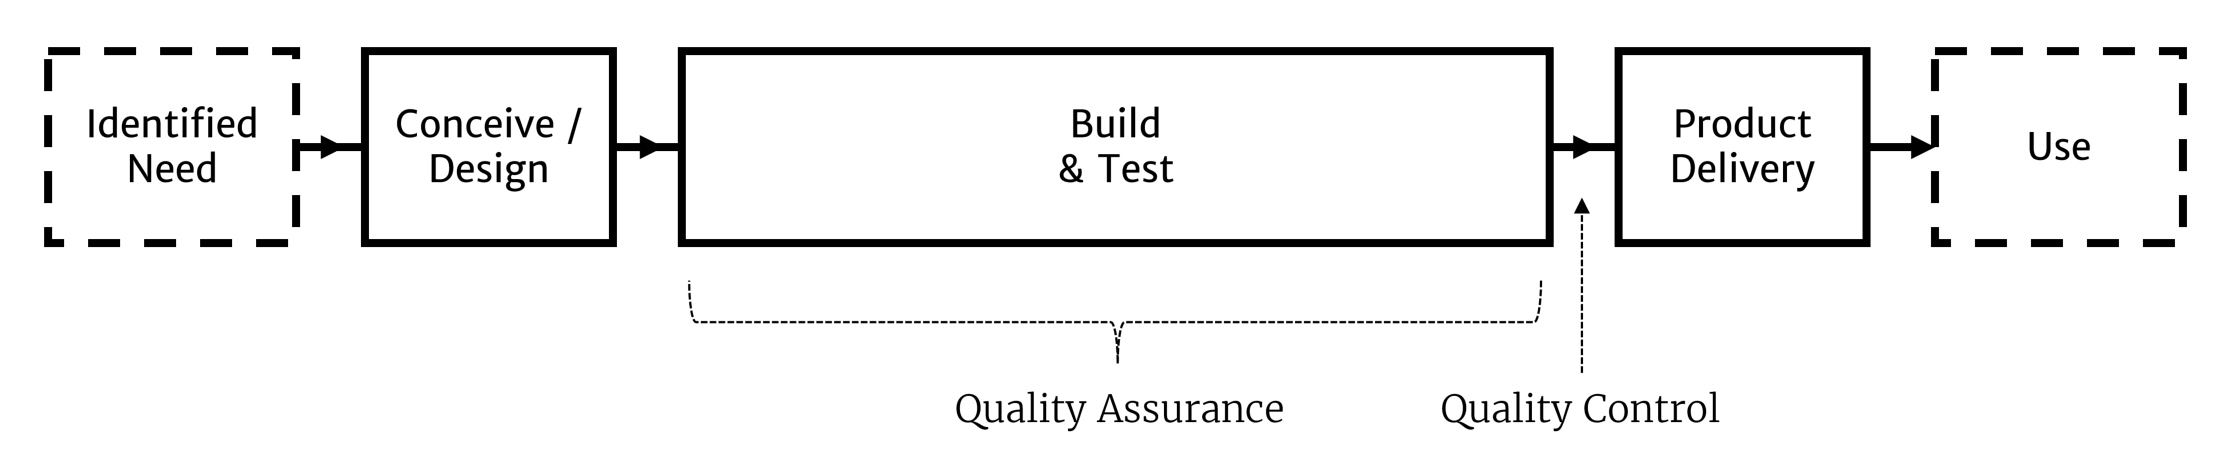 The development process starts with an identified need, moves to Conceive/Design, to Build & Test, to Product Delivery and finally to Use. Quality Assurance can happen during Build & Test. Quality Control can happen just before Product Delivery.